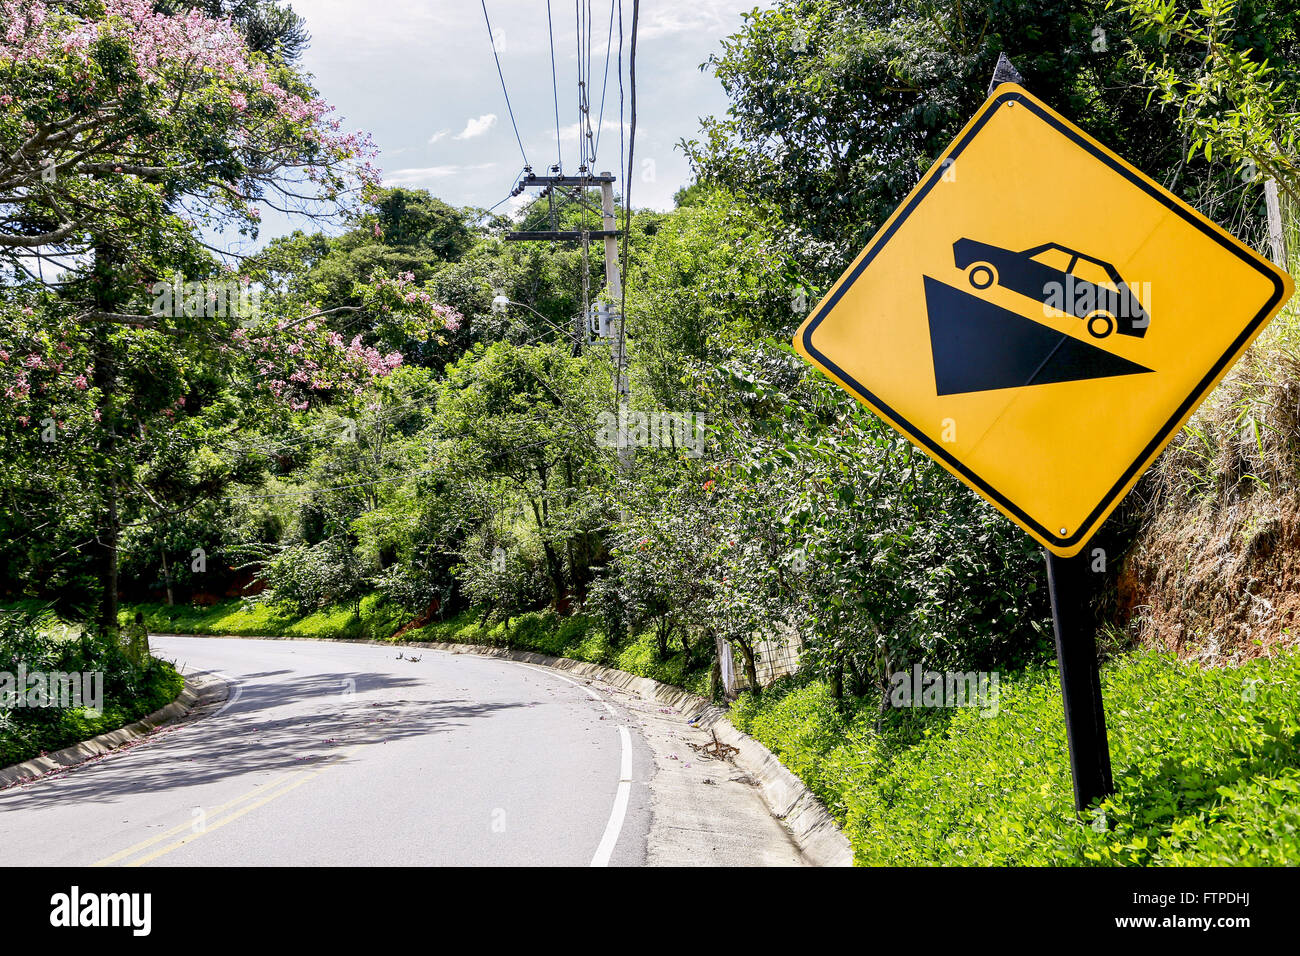 Plate signaling sharp incline in outer Darcy Penteado - Stock Image